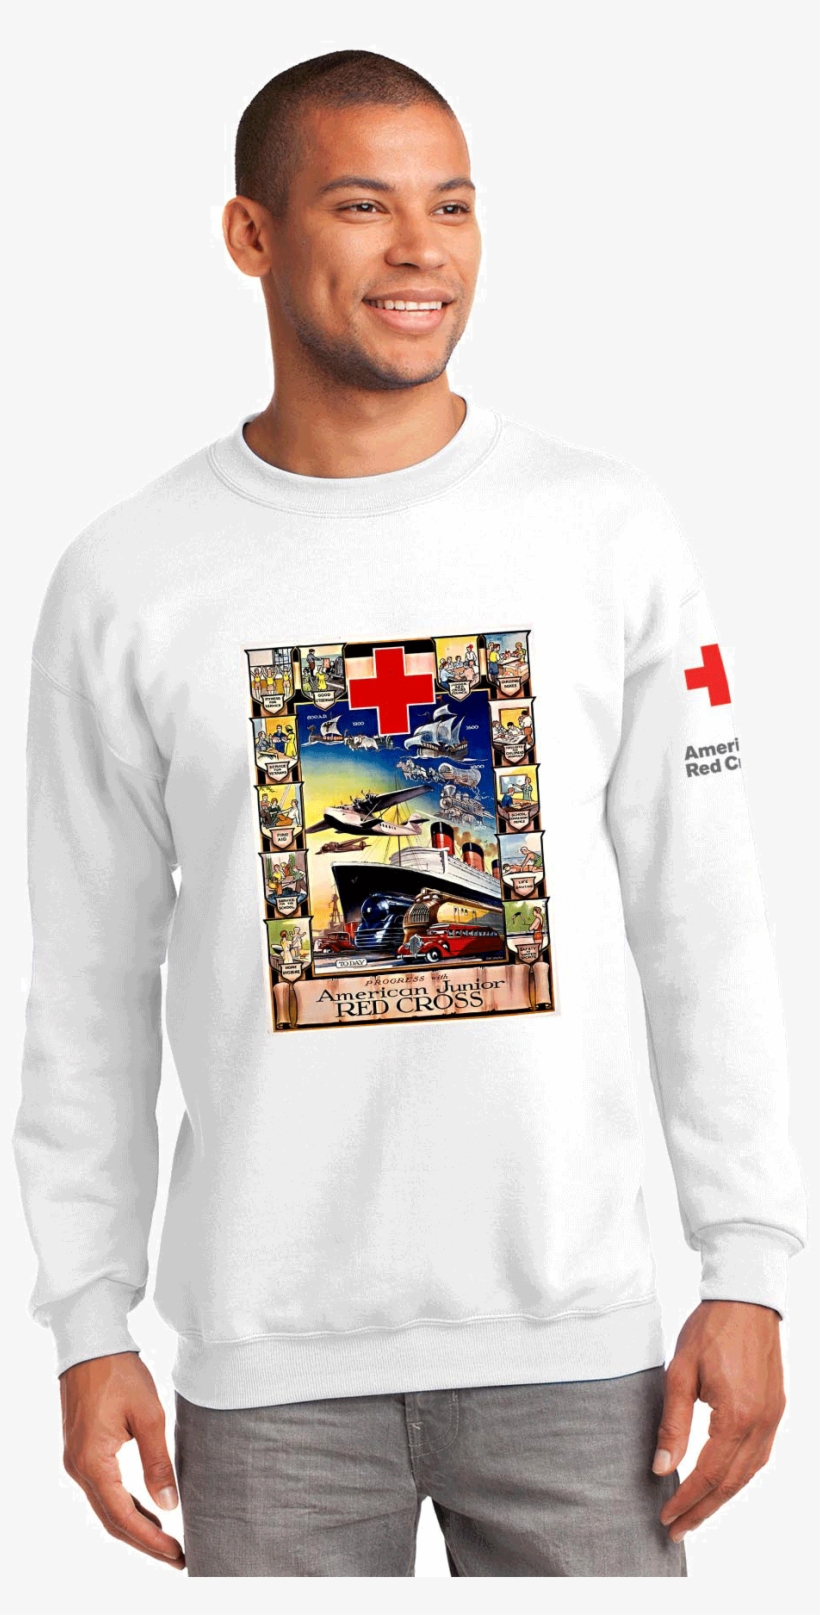 Unisex Crew Neck With American Junior Red Cross Boat - Rolex Crewneck Sweatshirt, transparent png #1568740